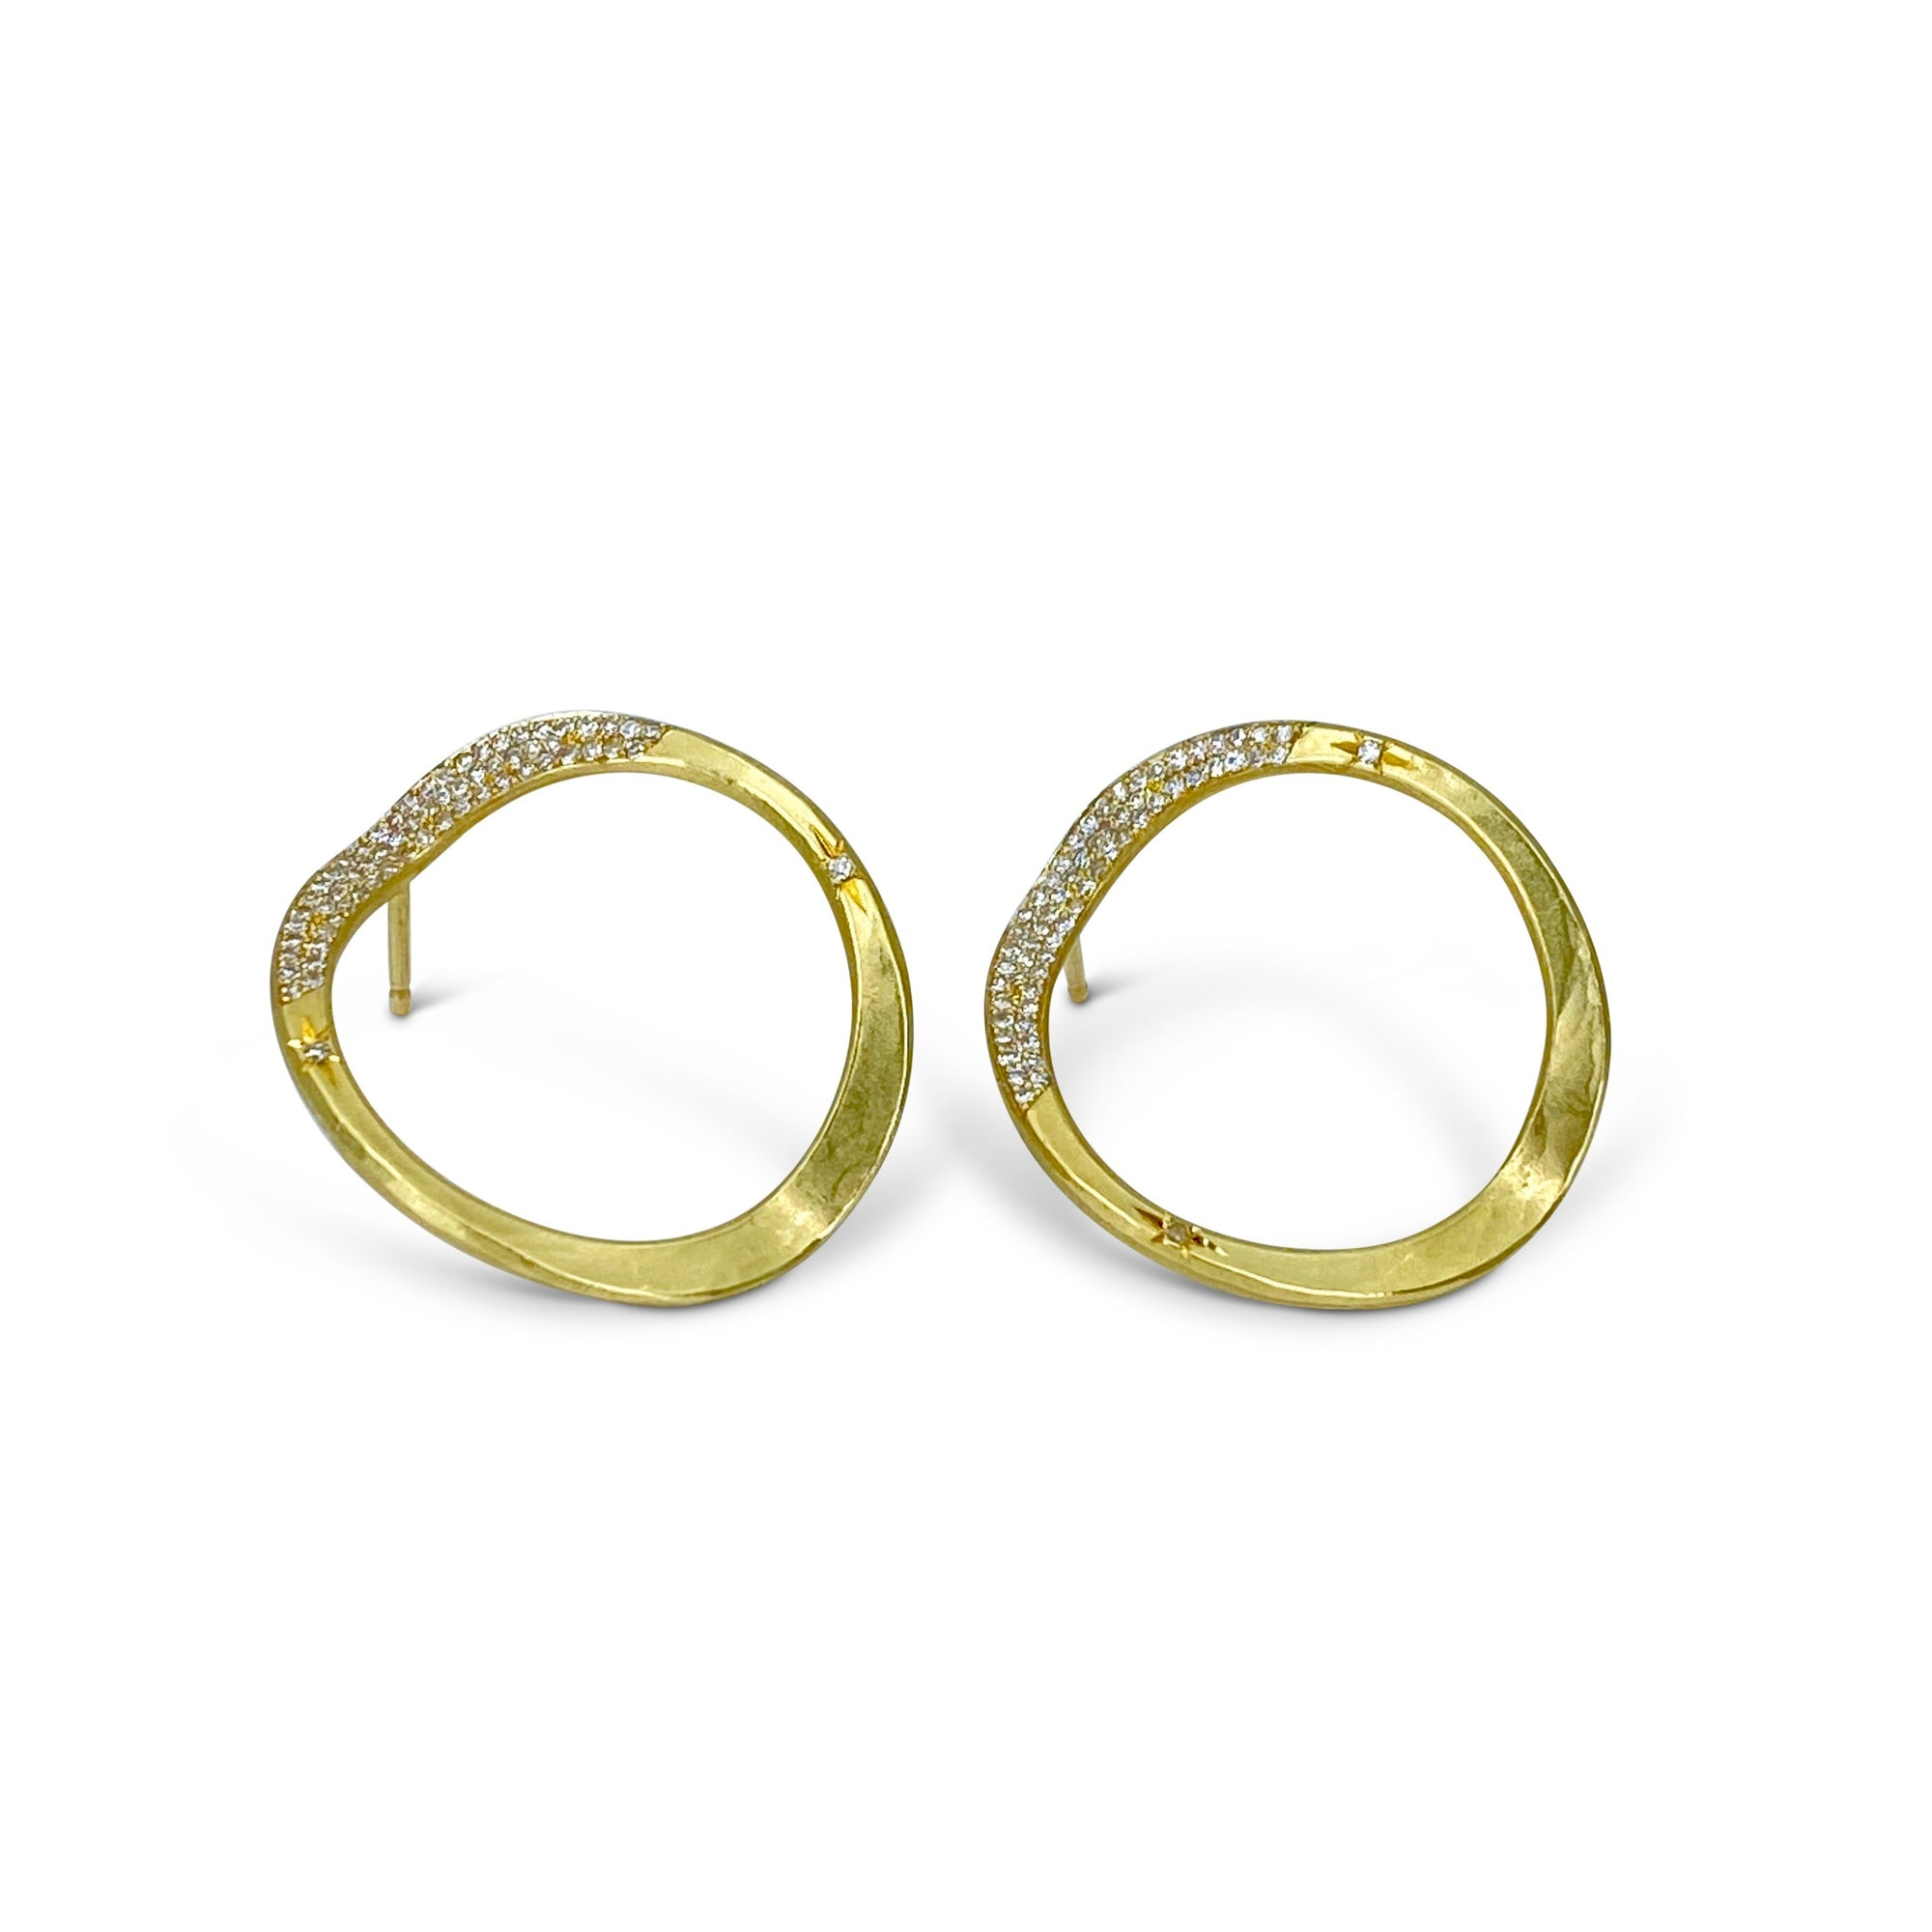 V forged hoop earrings in 18K gold and pave-set diamonds